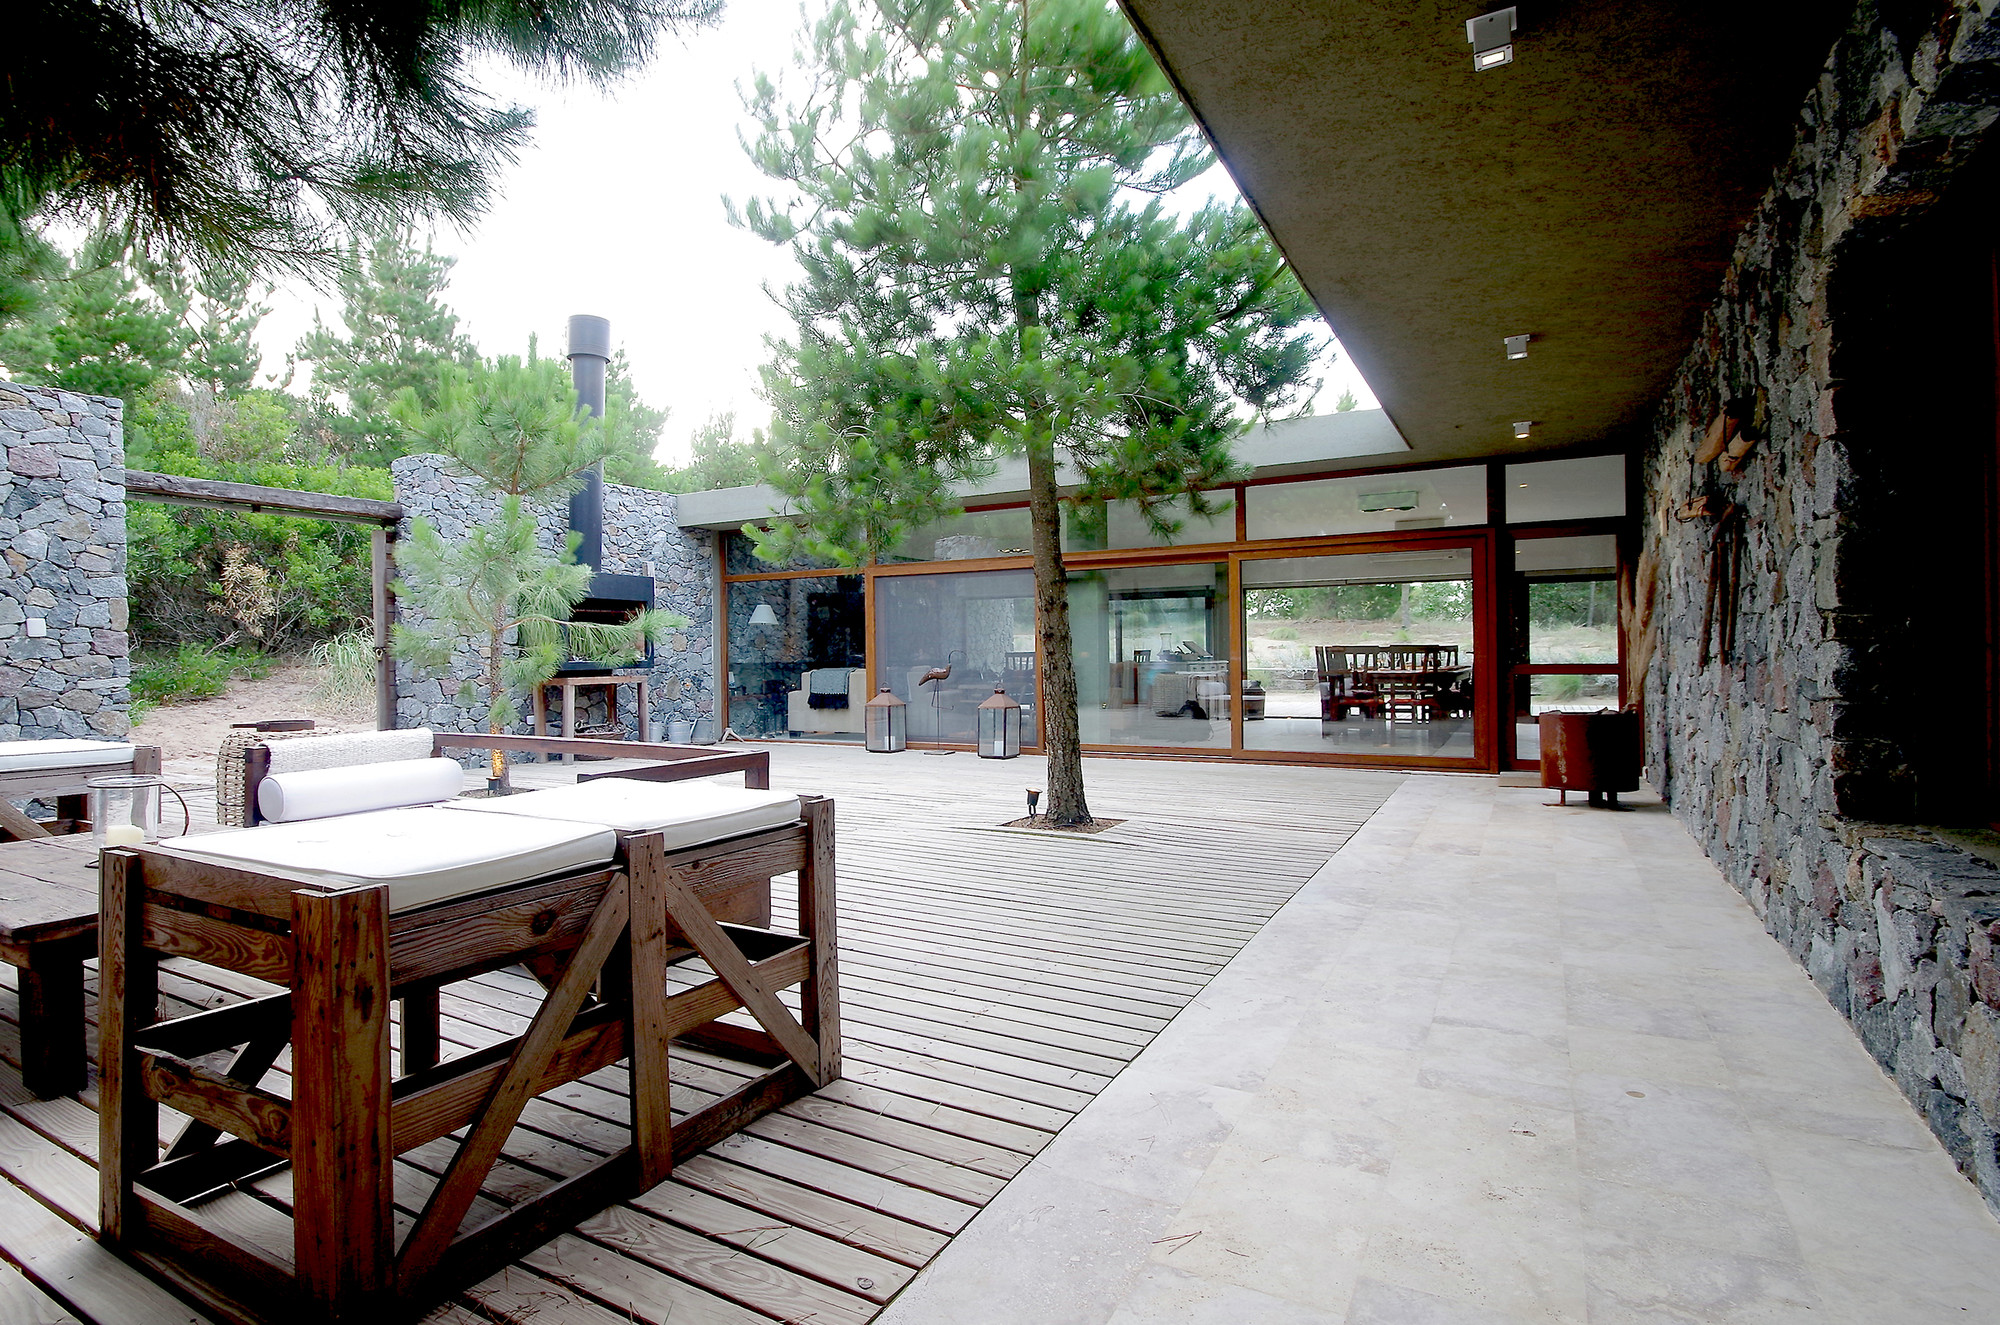 Patio House el patio house / lucas mc lean | archdaily